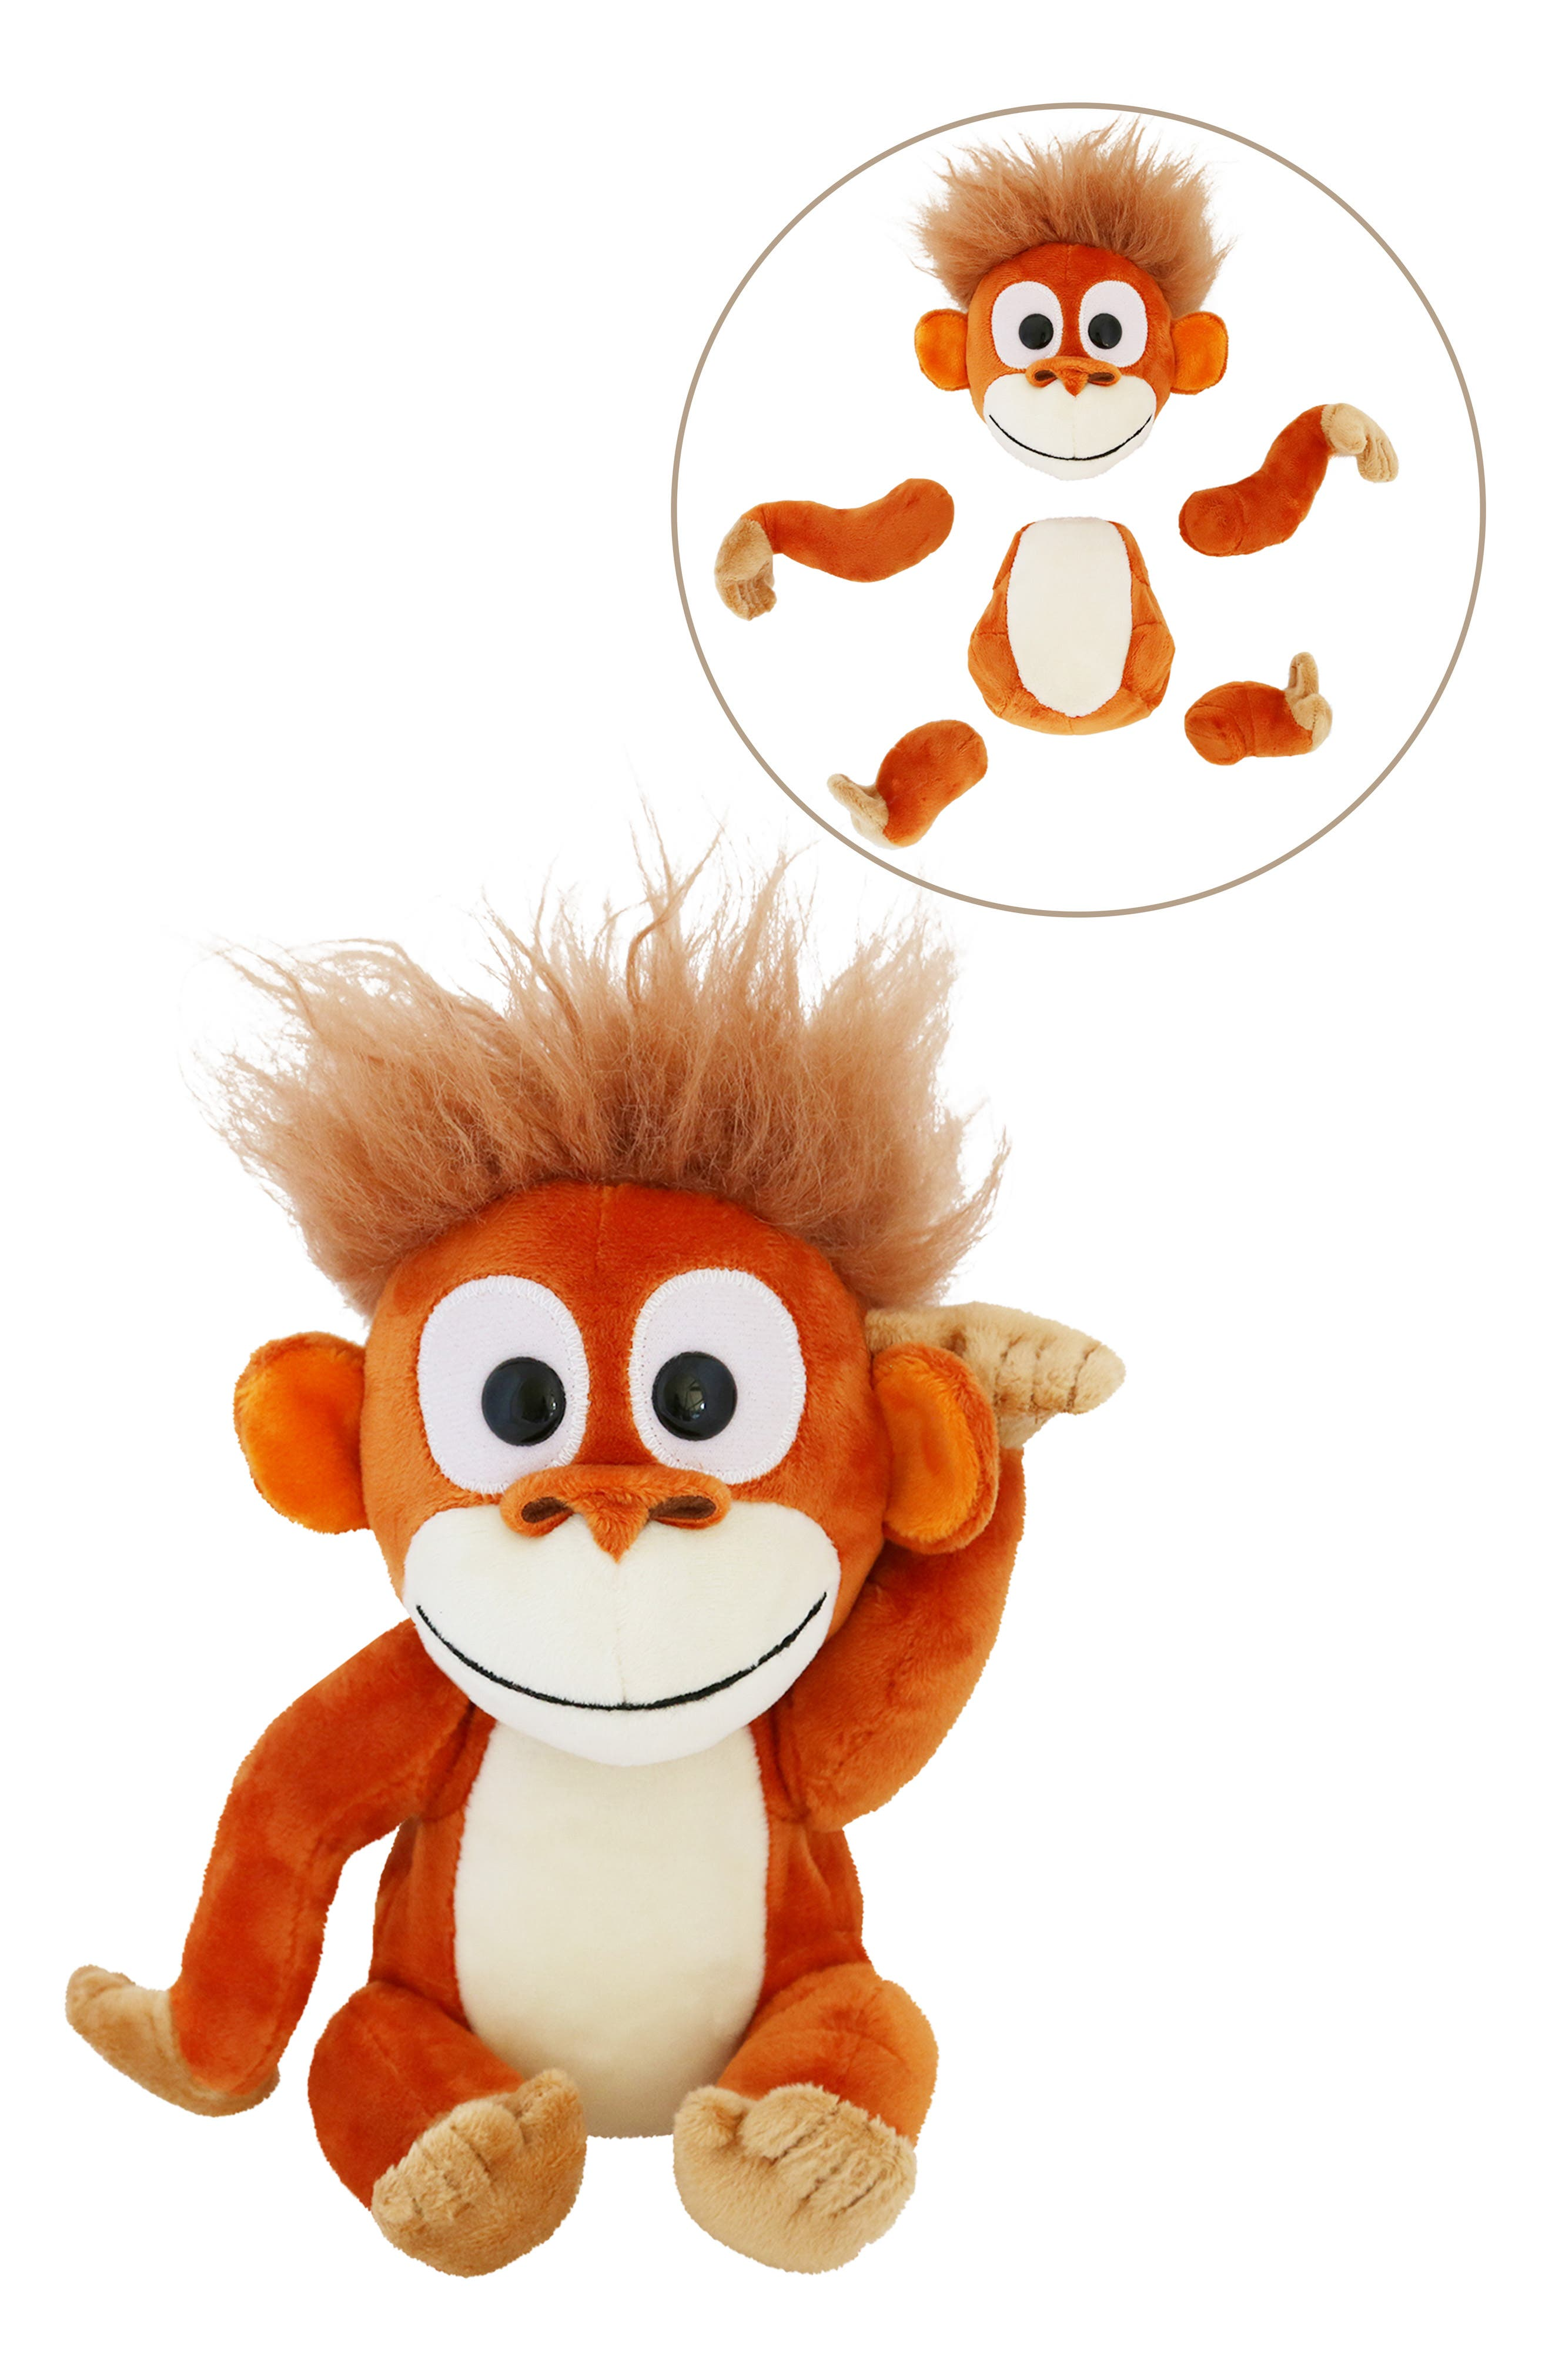 Animoodles Randy Orangutan Magnetic Stuffed Animal